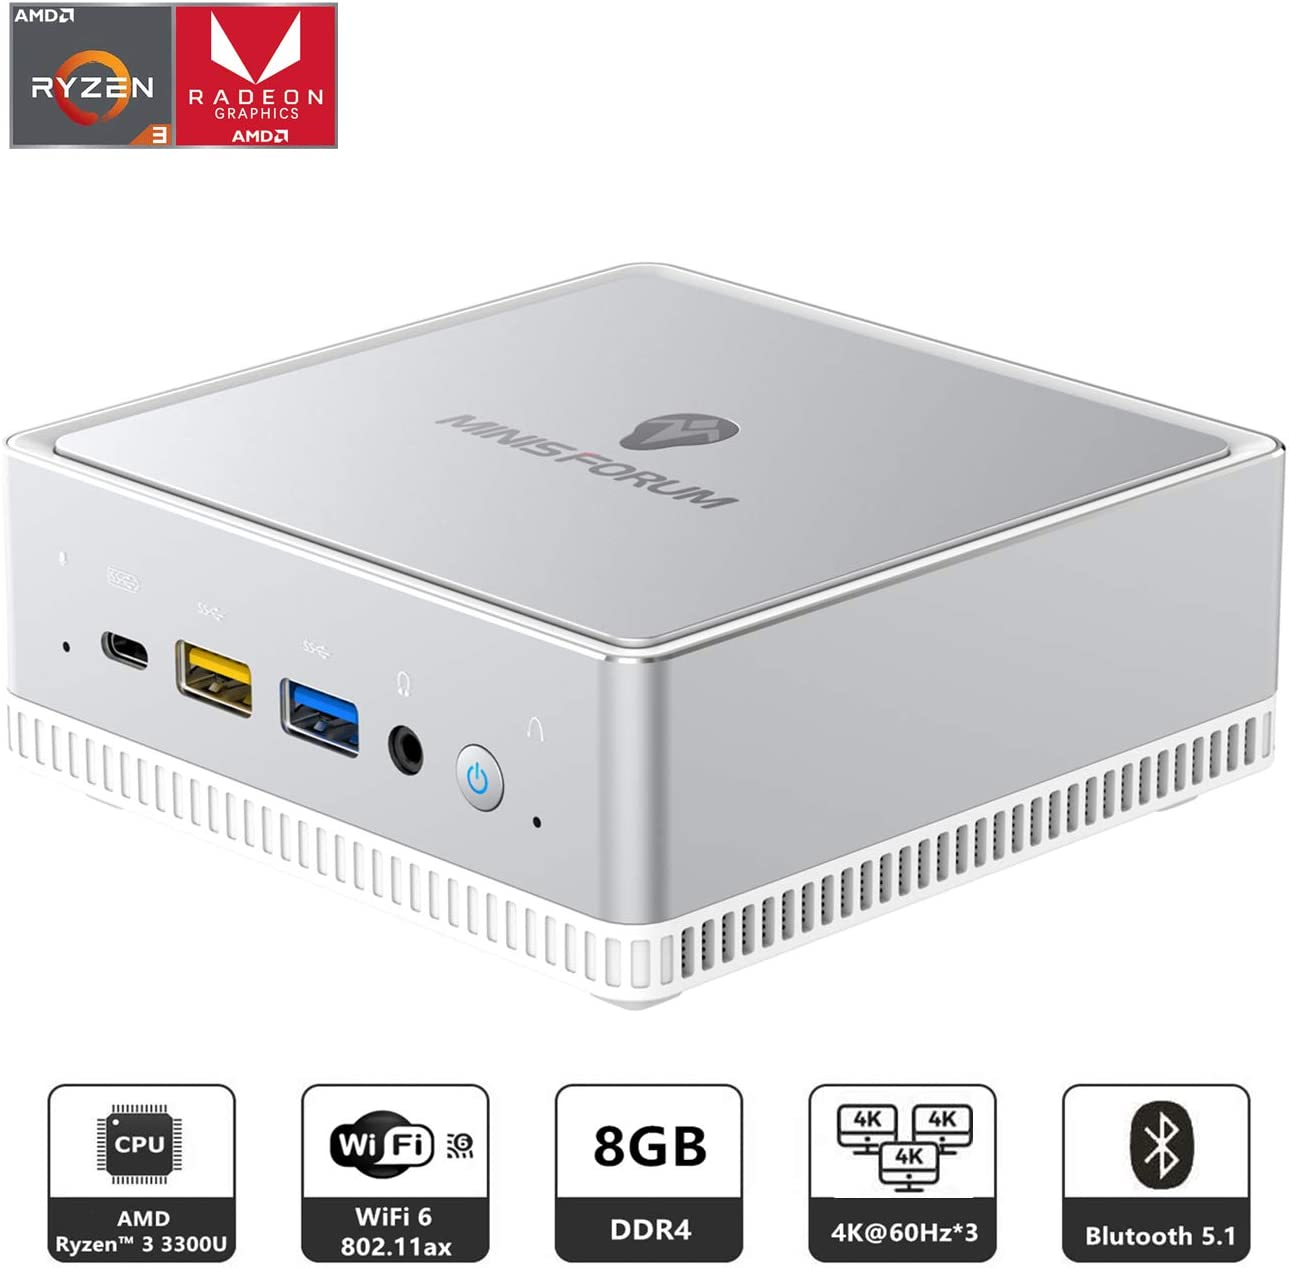 Mini PC AMD Ryzen 3 3300U | 8 GB RAM 256 GB M.2 SSD | Radeon Vega 6 Graphics | Windows 10 | Intel WIFI6 AX200 BT 5.1 | 4K HDMI 2.0 / Display/USB-C | 2X RJ45 Gigabit | 4X USB 3.1 | Small Form Factor